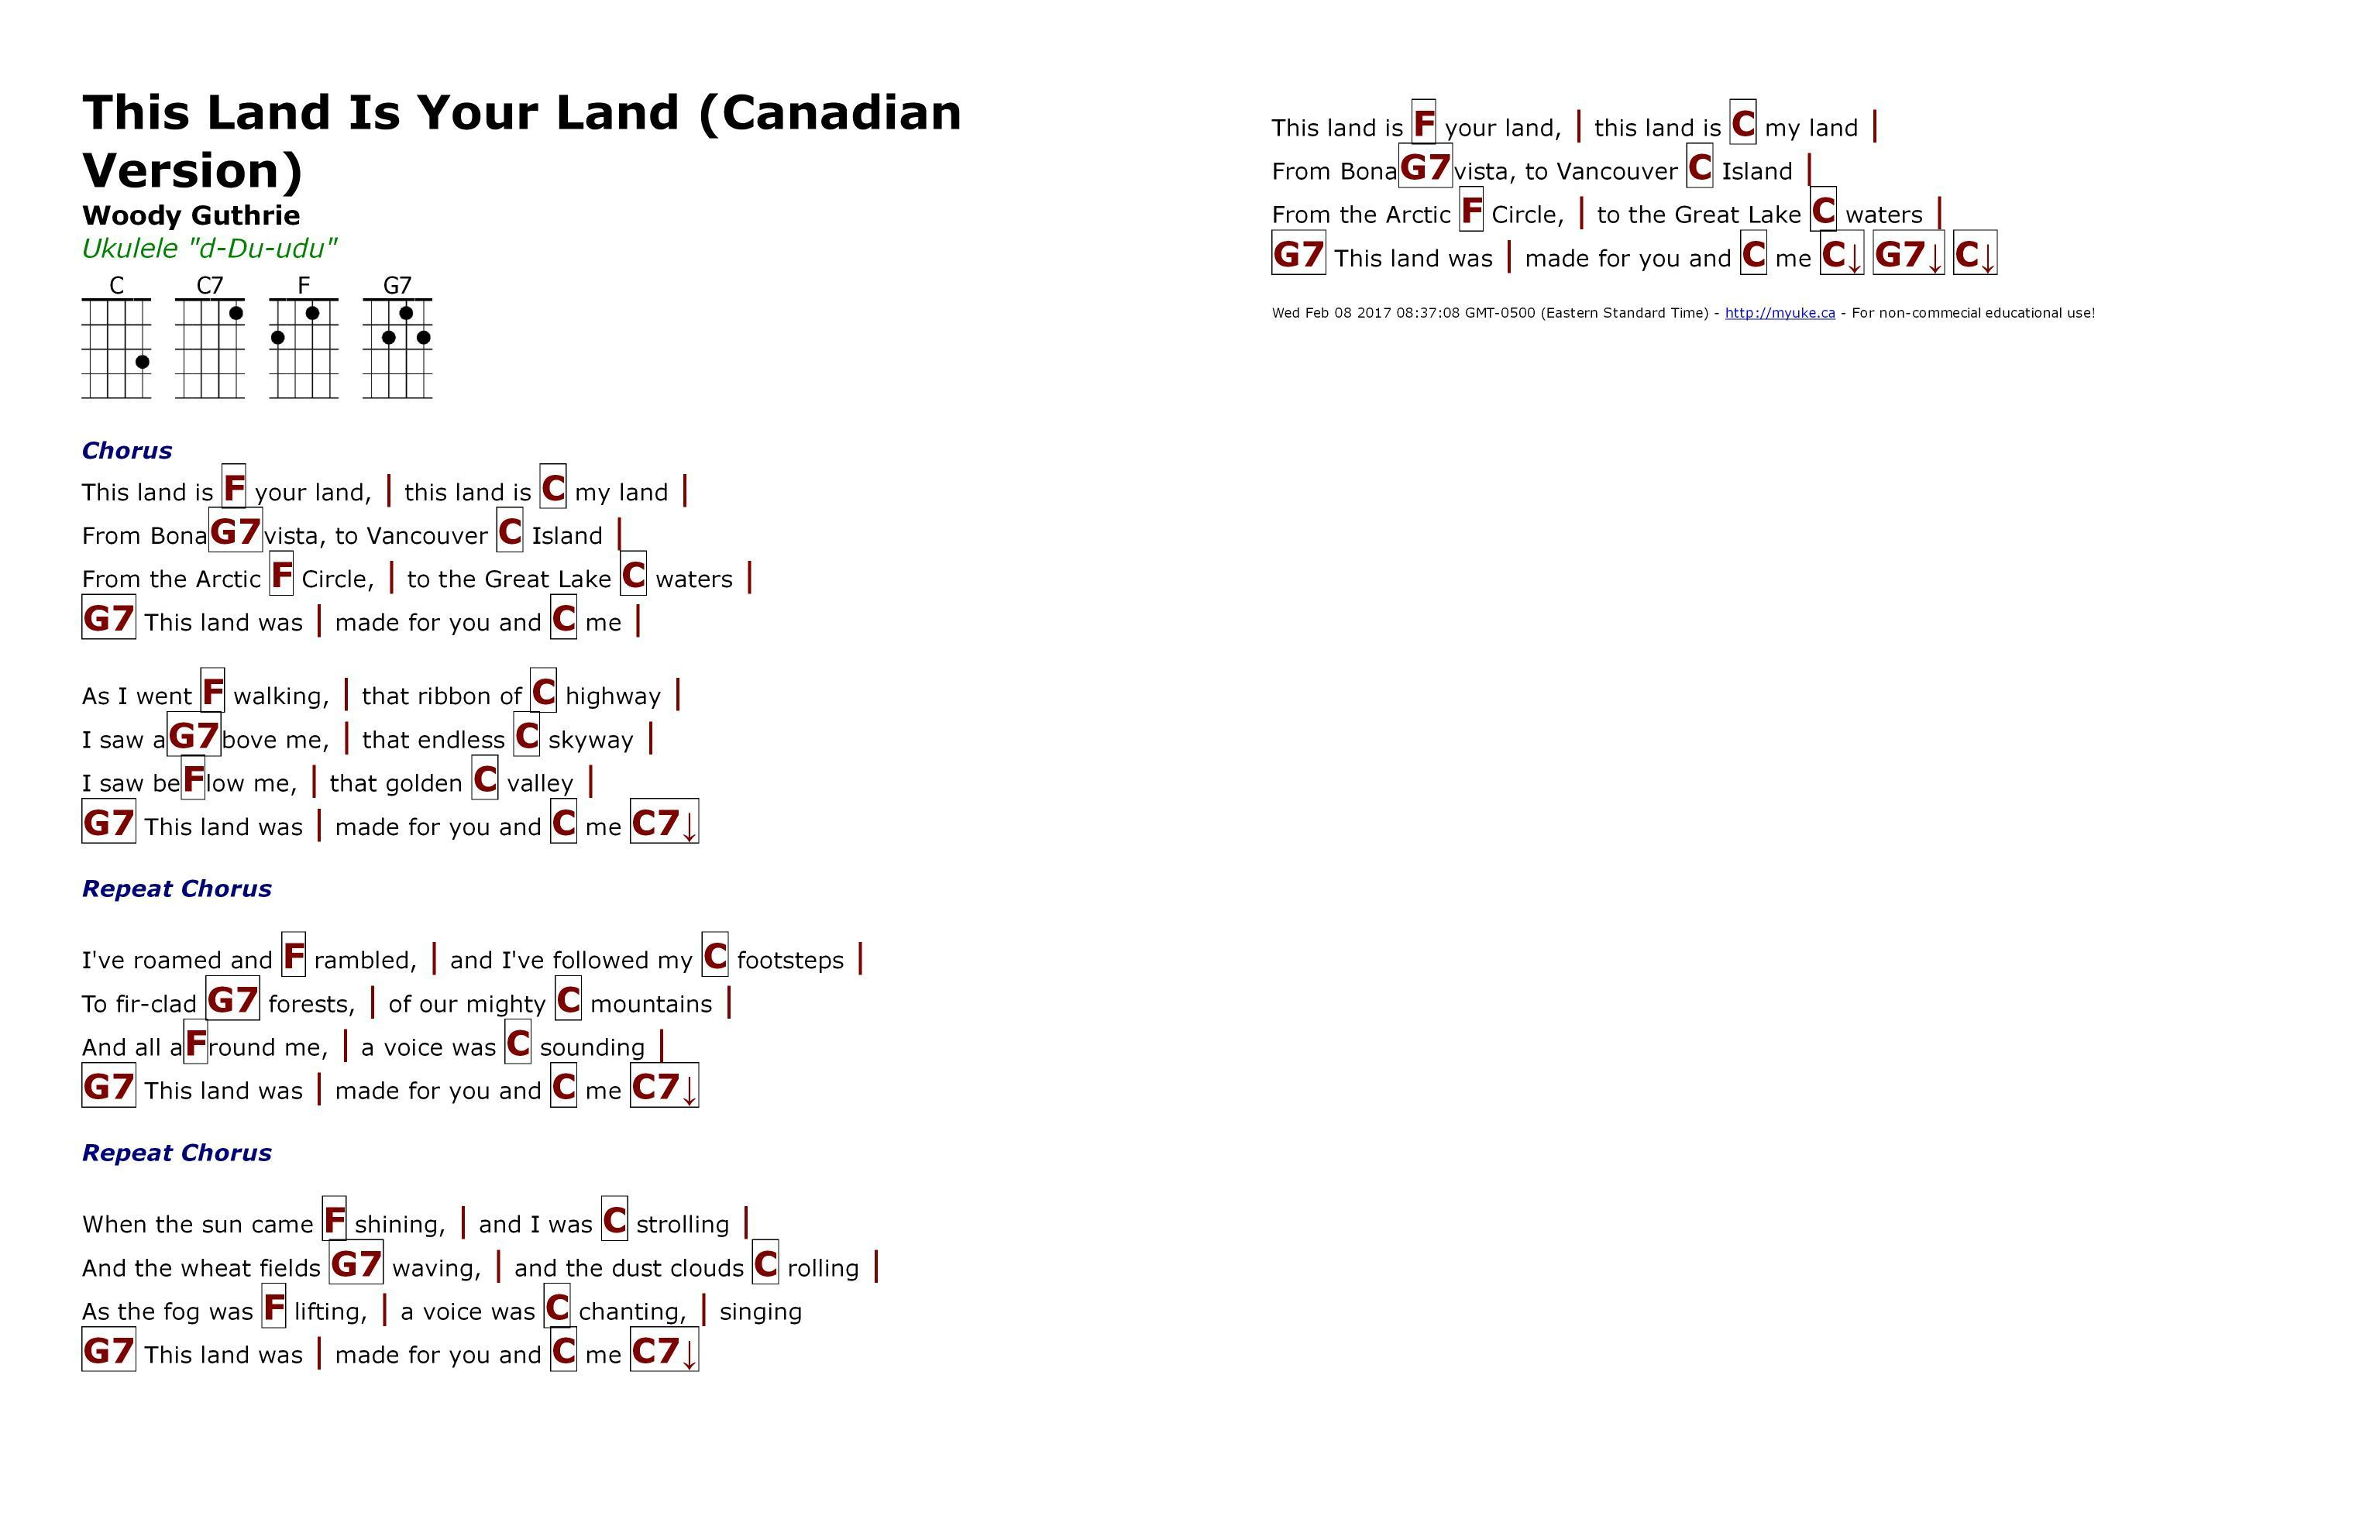 This Land Is Your Land Canadian Version Woodie Guthrie Http